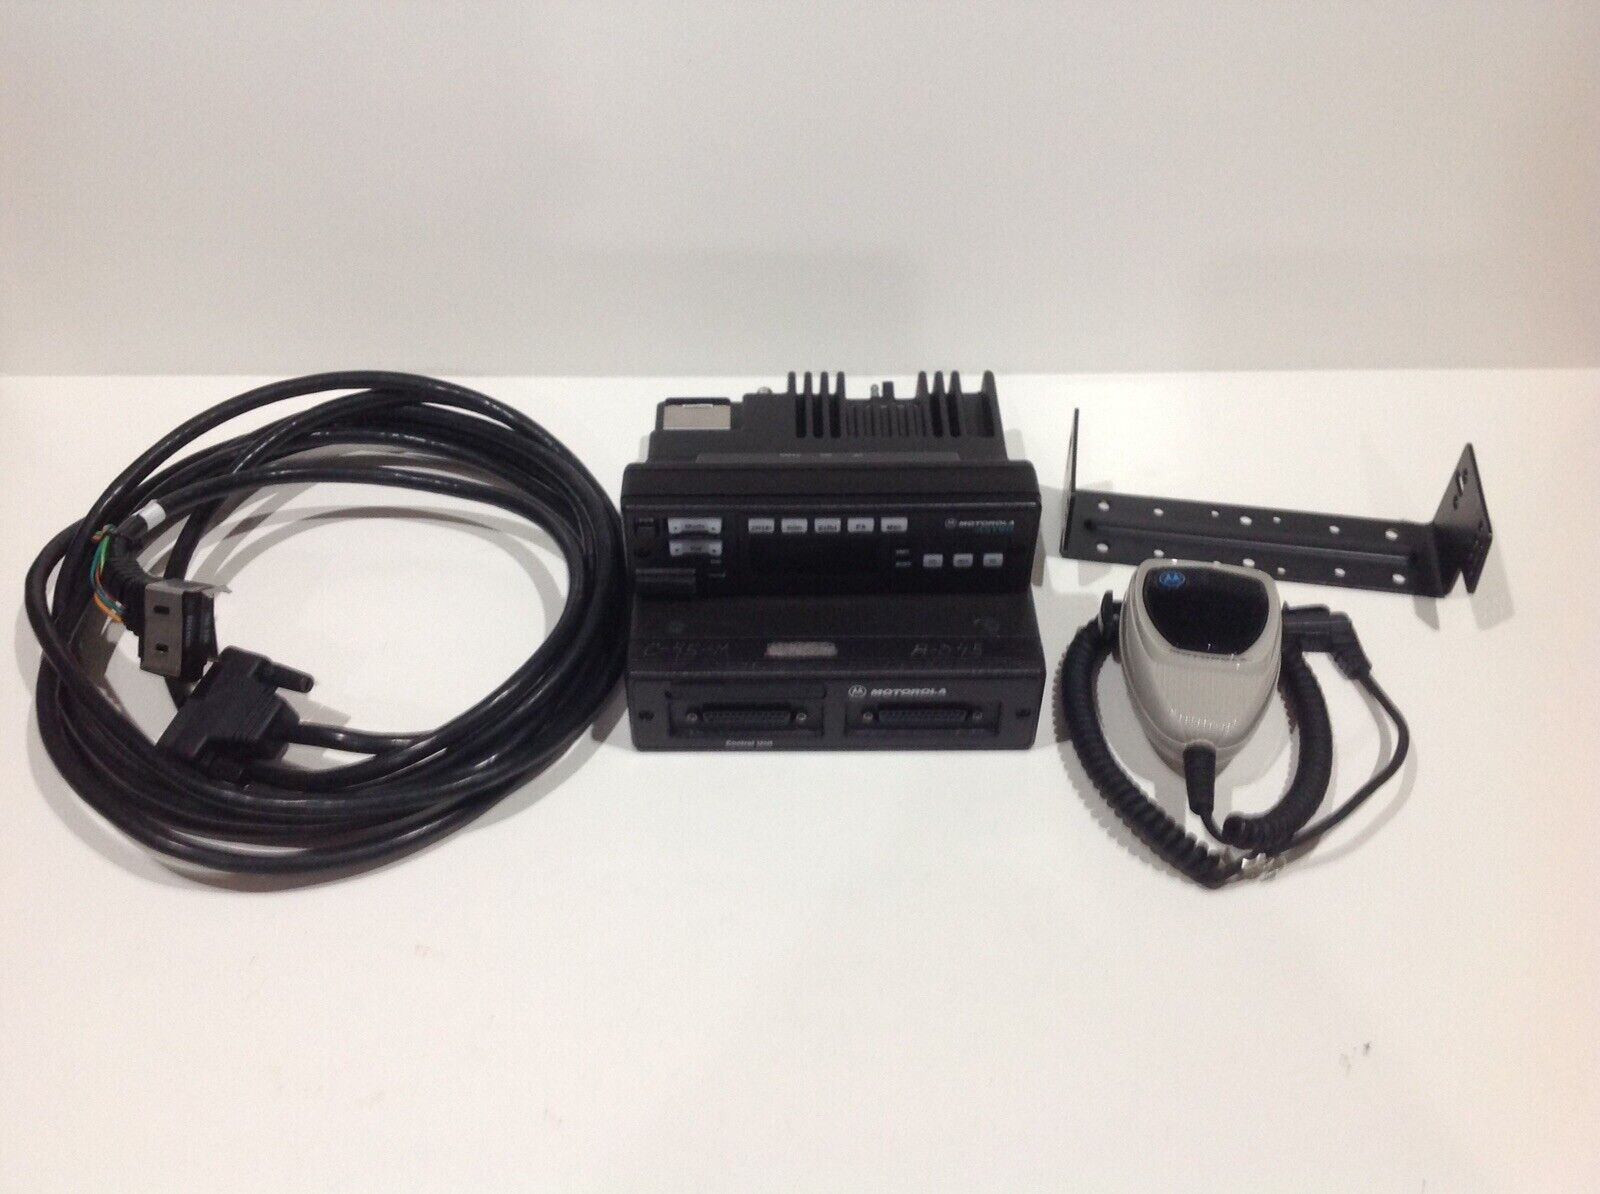 MOTOROLA ASTRO SPECTRA  UHF 40 Watts 128 Ch 450-482 MHz W5 HAM (Remote Mount). Buy it now for 225.00